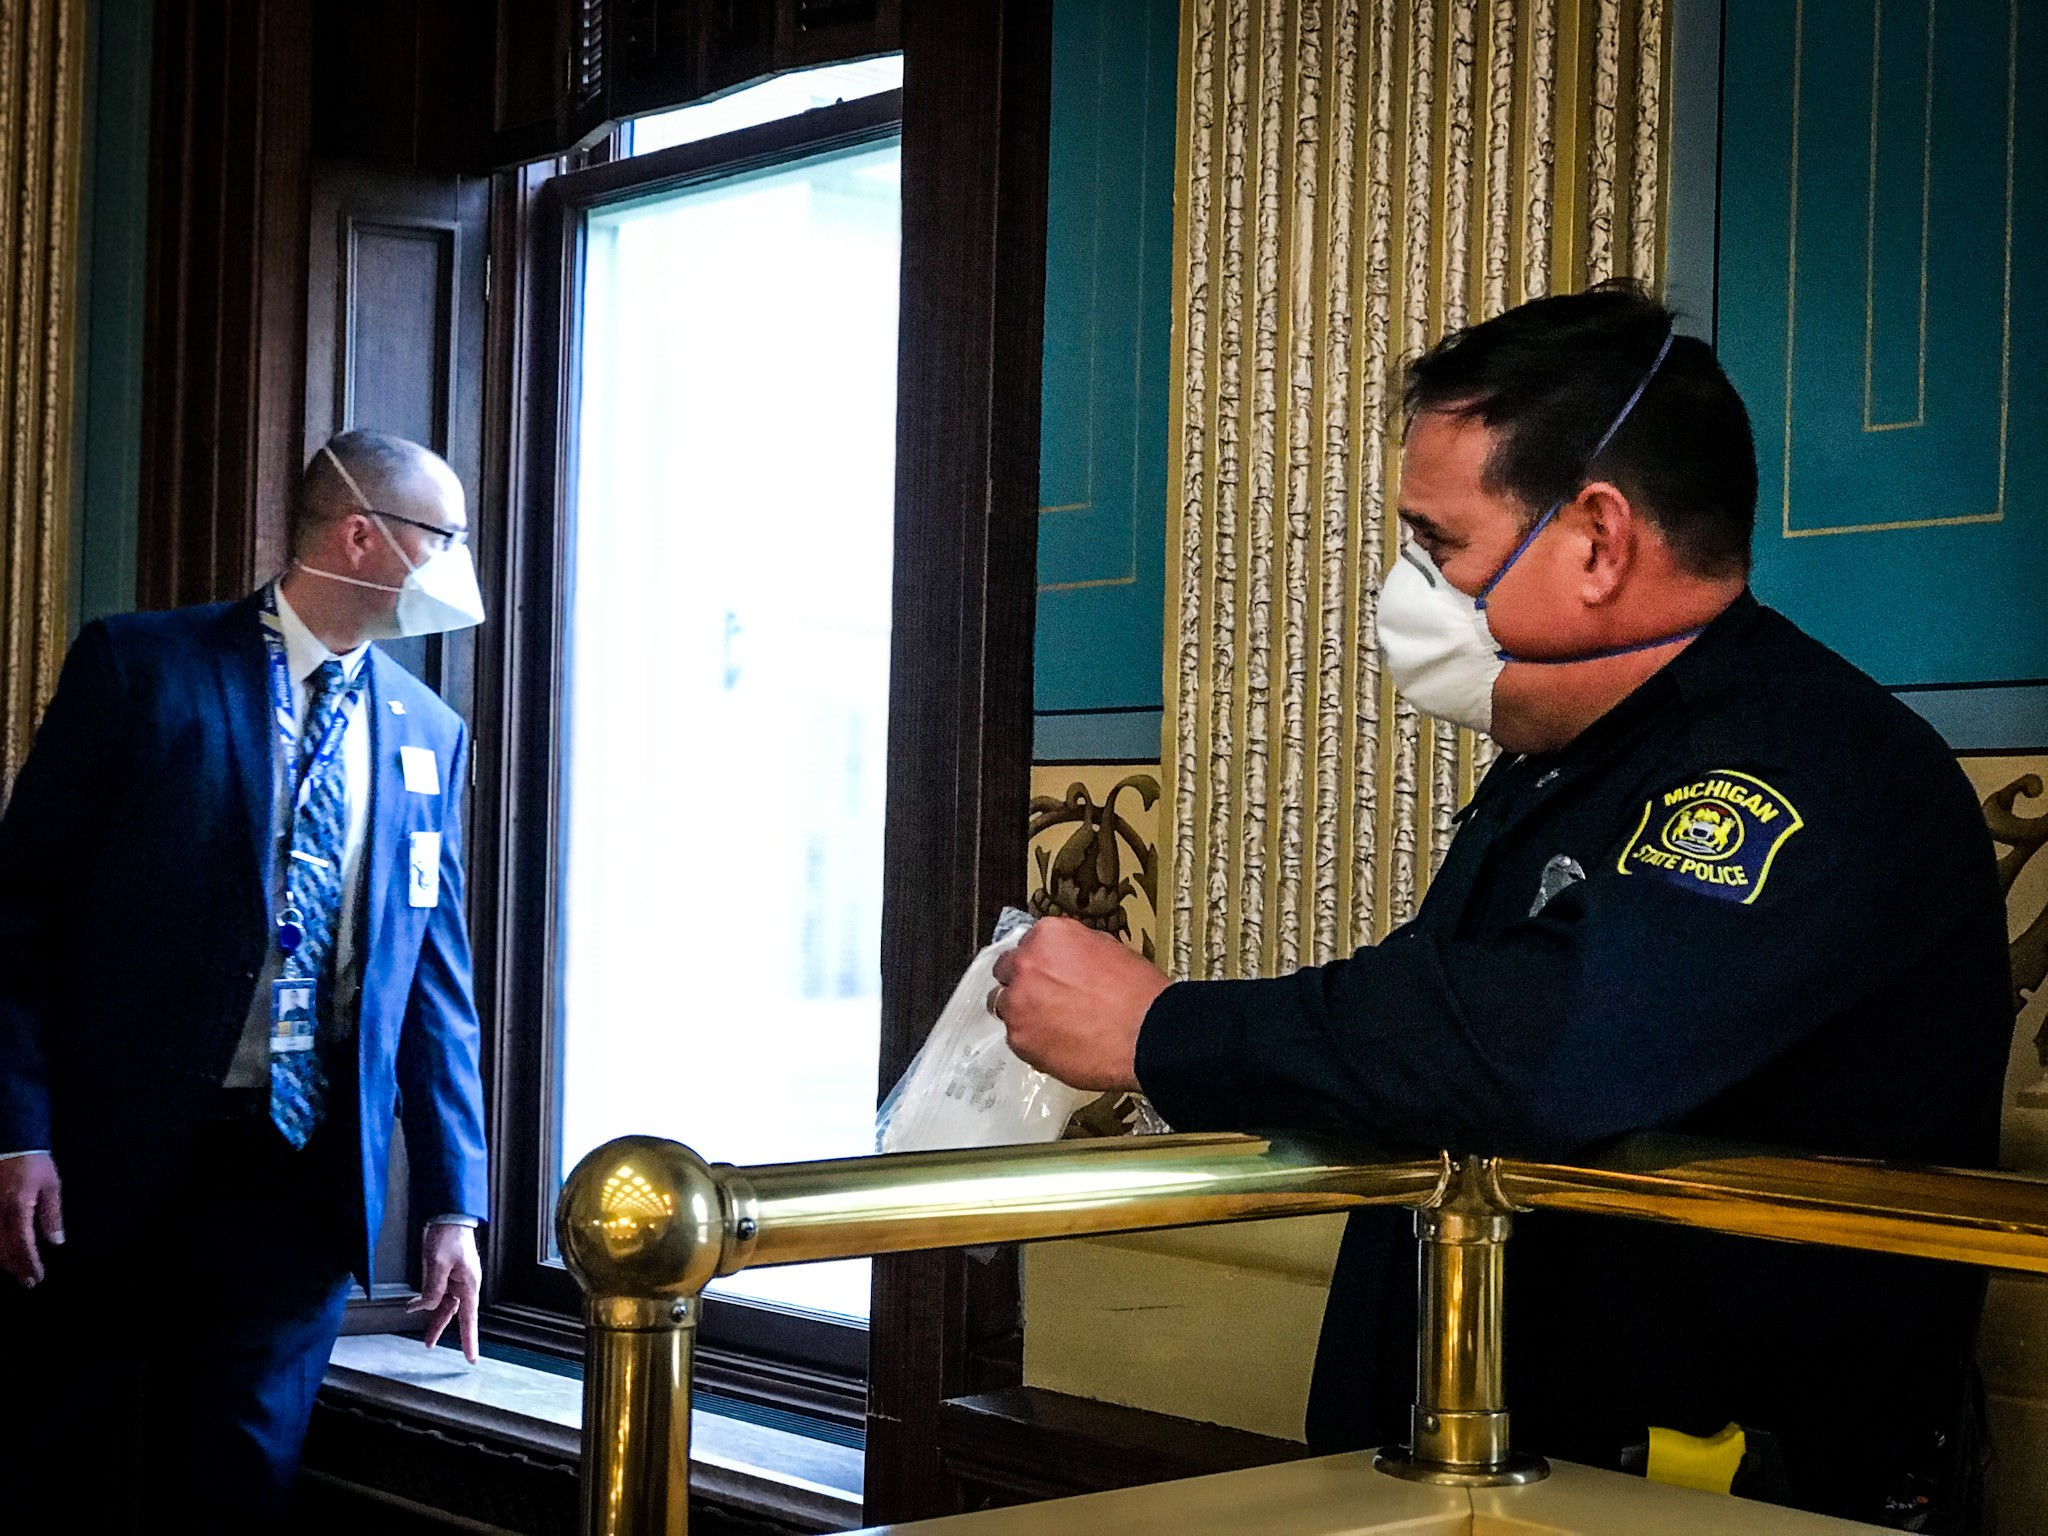 A state trooper wears a mask{ }at the Michigan Capitol on Tuesday, April 7, 2020. (SBG/Mikenzie Frost)